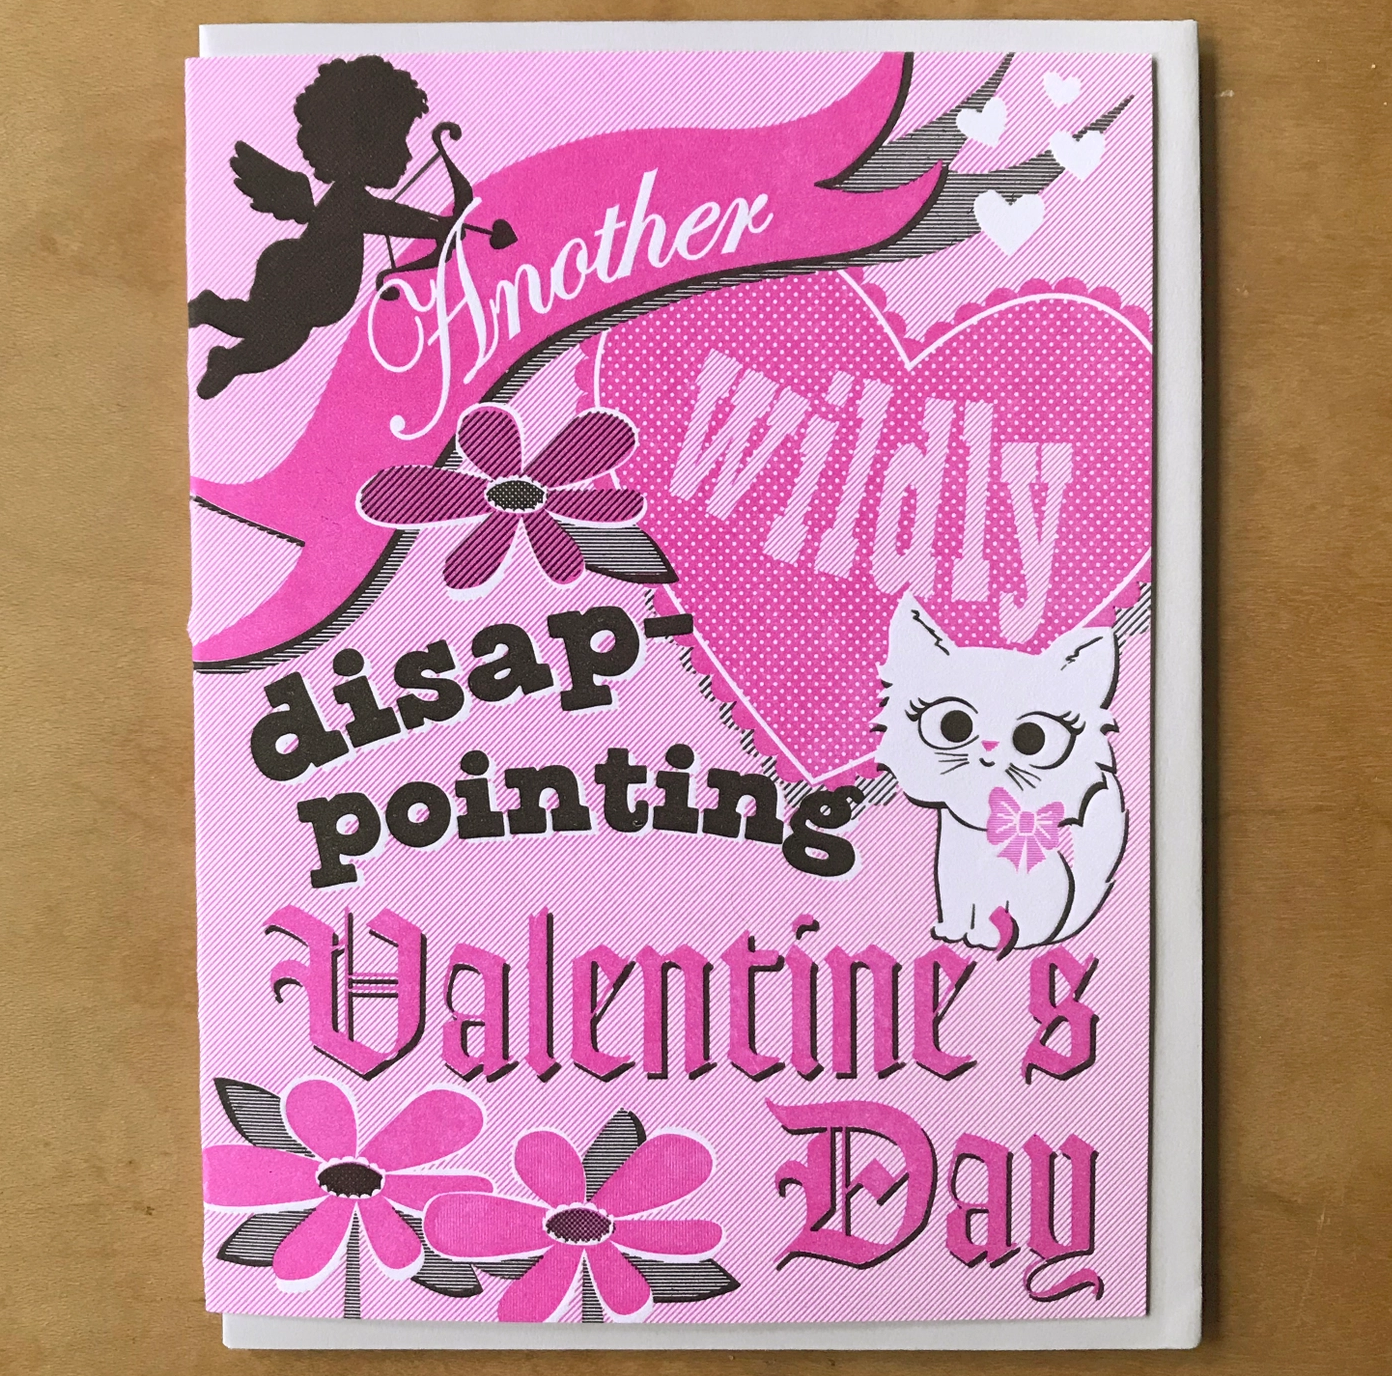 McBitterson's Another Wildly Disappointing Valentine's Day